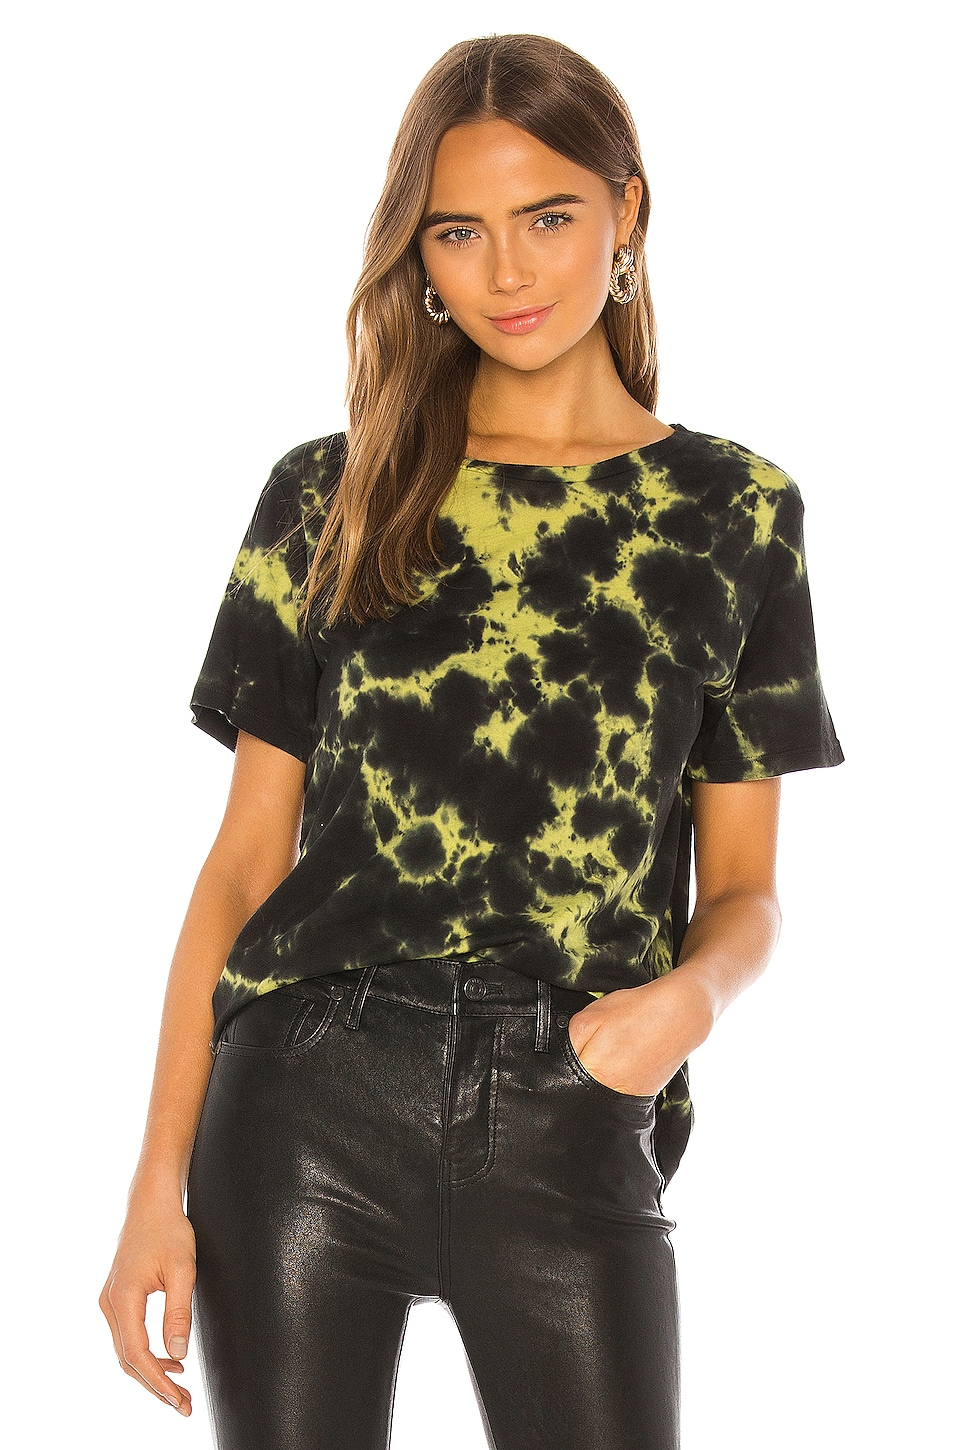 MONROW Oversized Crew Tee With Black Out Tie Dye in Citron